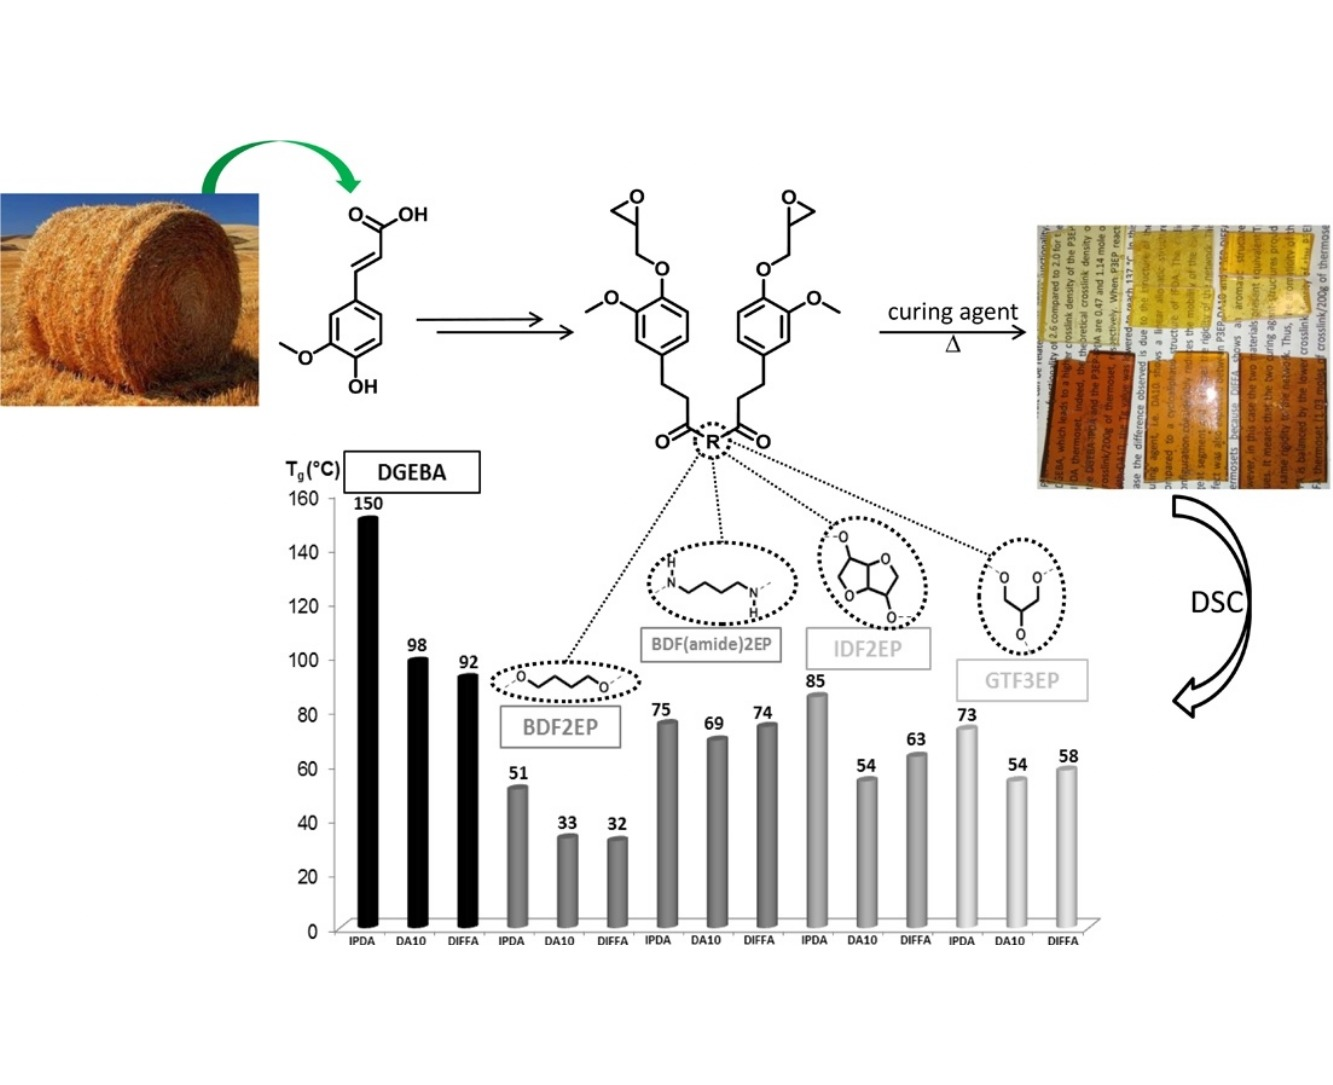 Ferulic acid-based renewable esters and amides-containing epoxy thermosets from wheat bran and beetroot pulp: Chemo-enzymatic synthesis and thermo-mechanical properties characterization